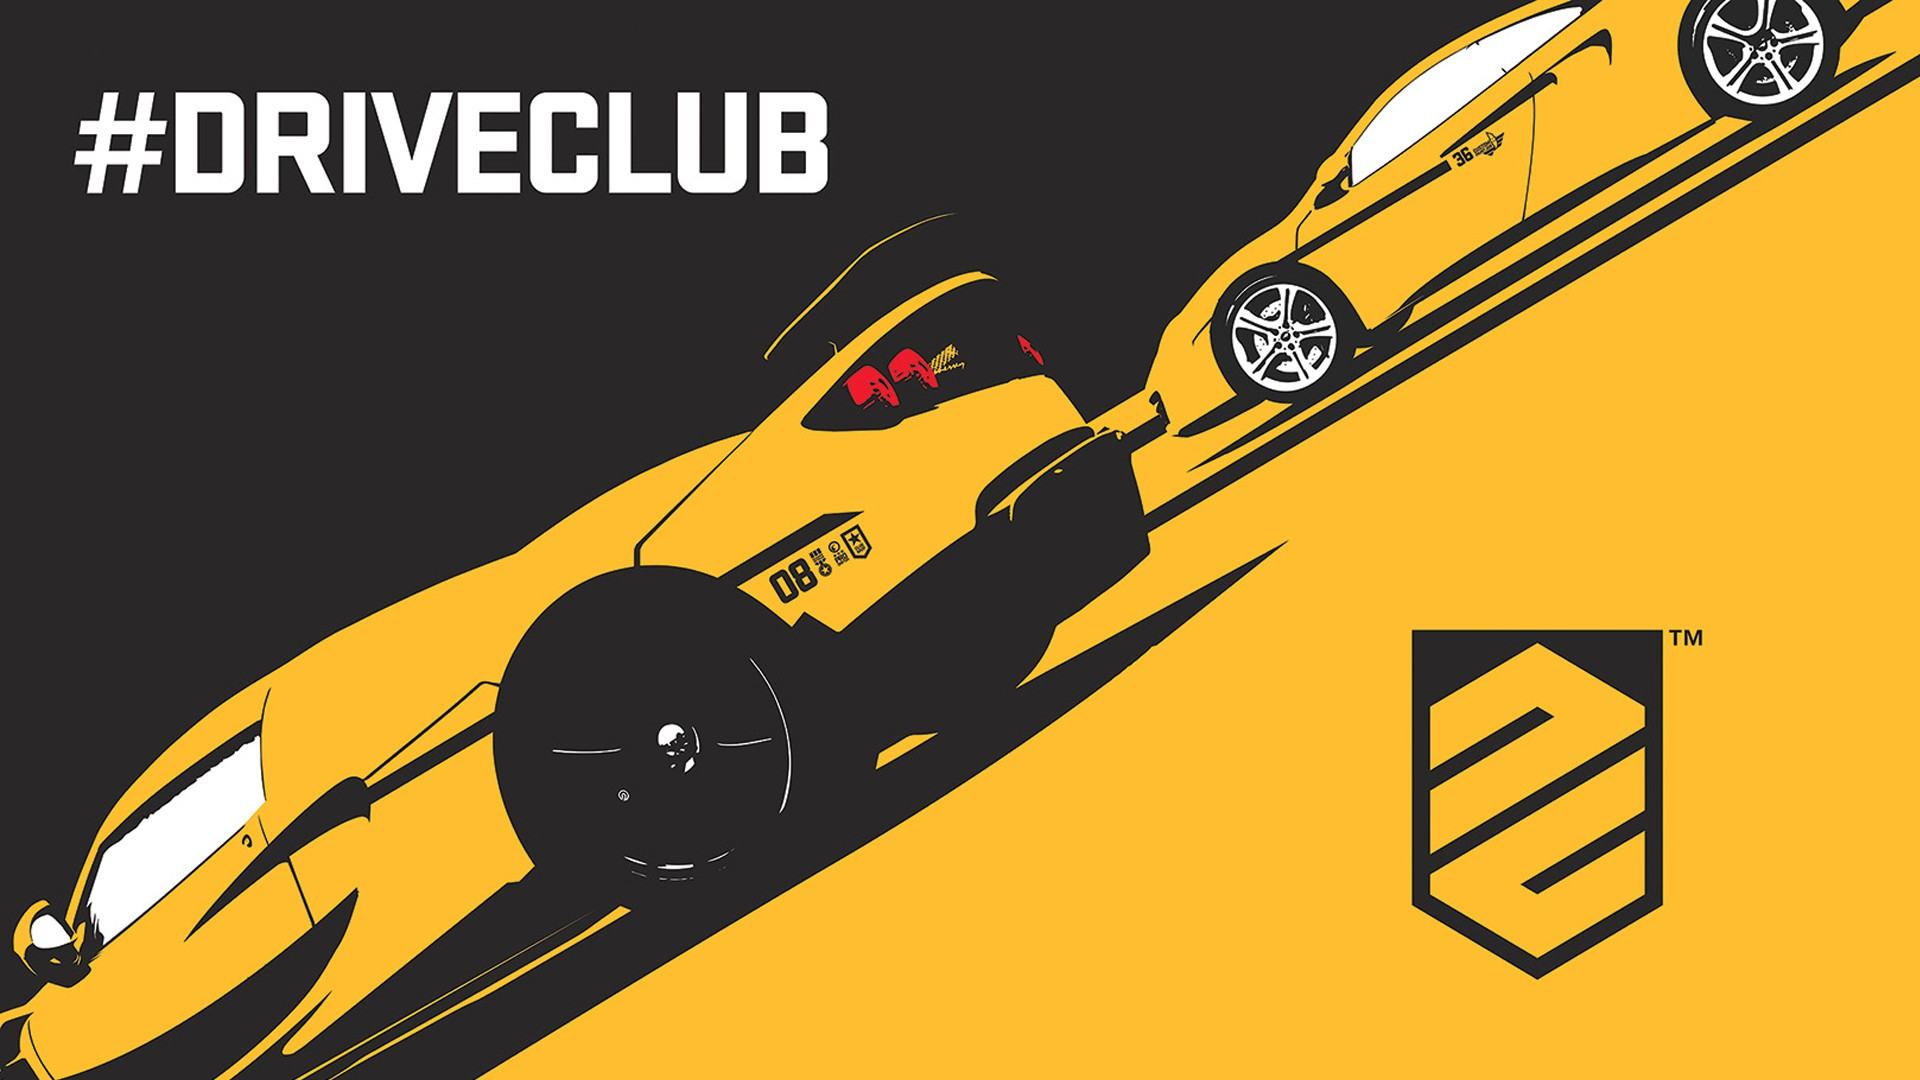 Drive Club Wallpapers